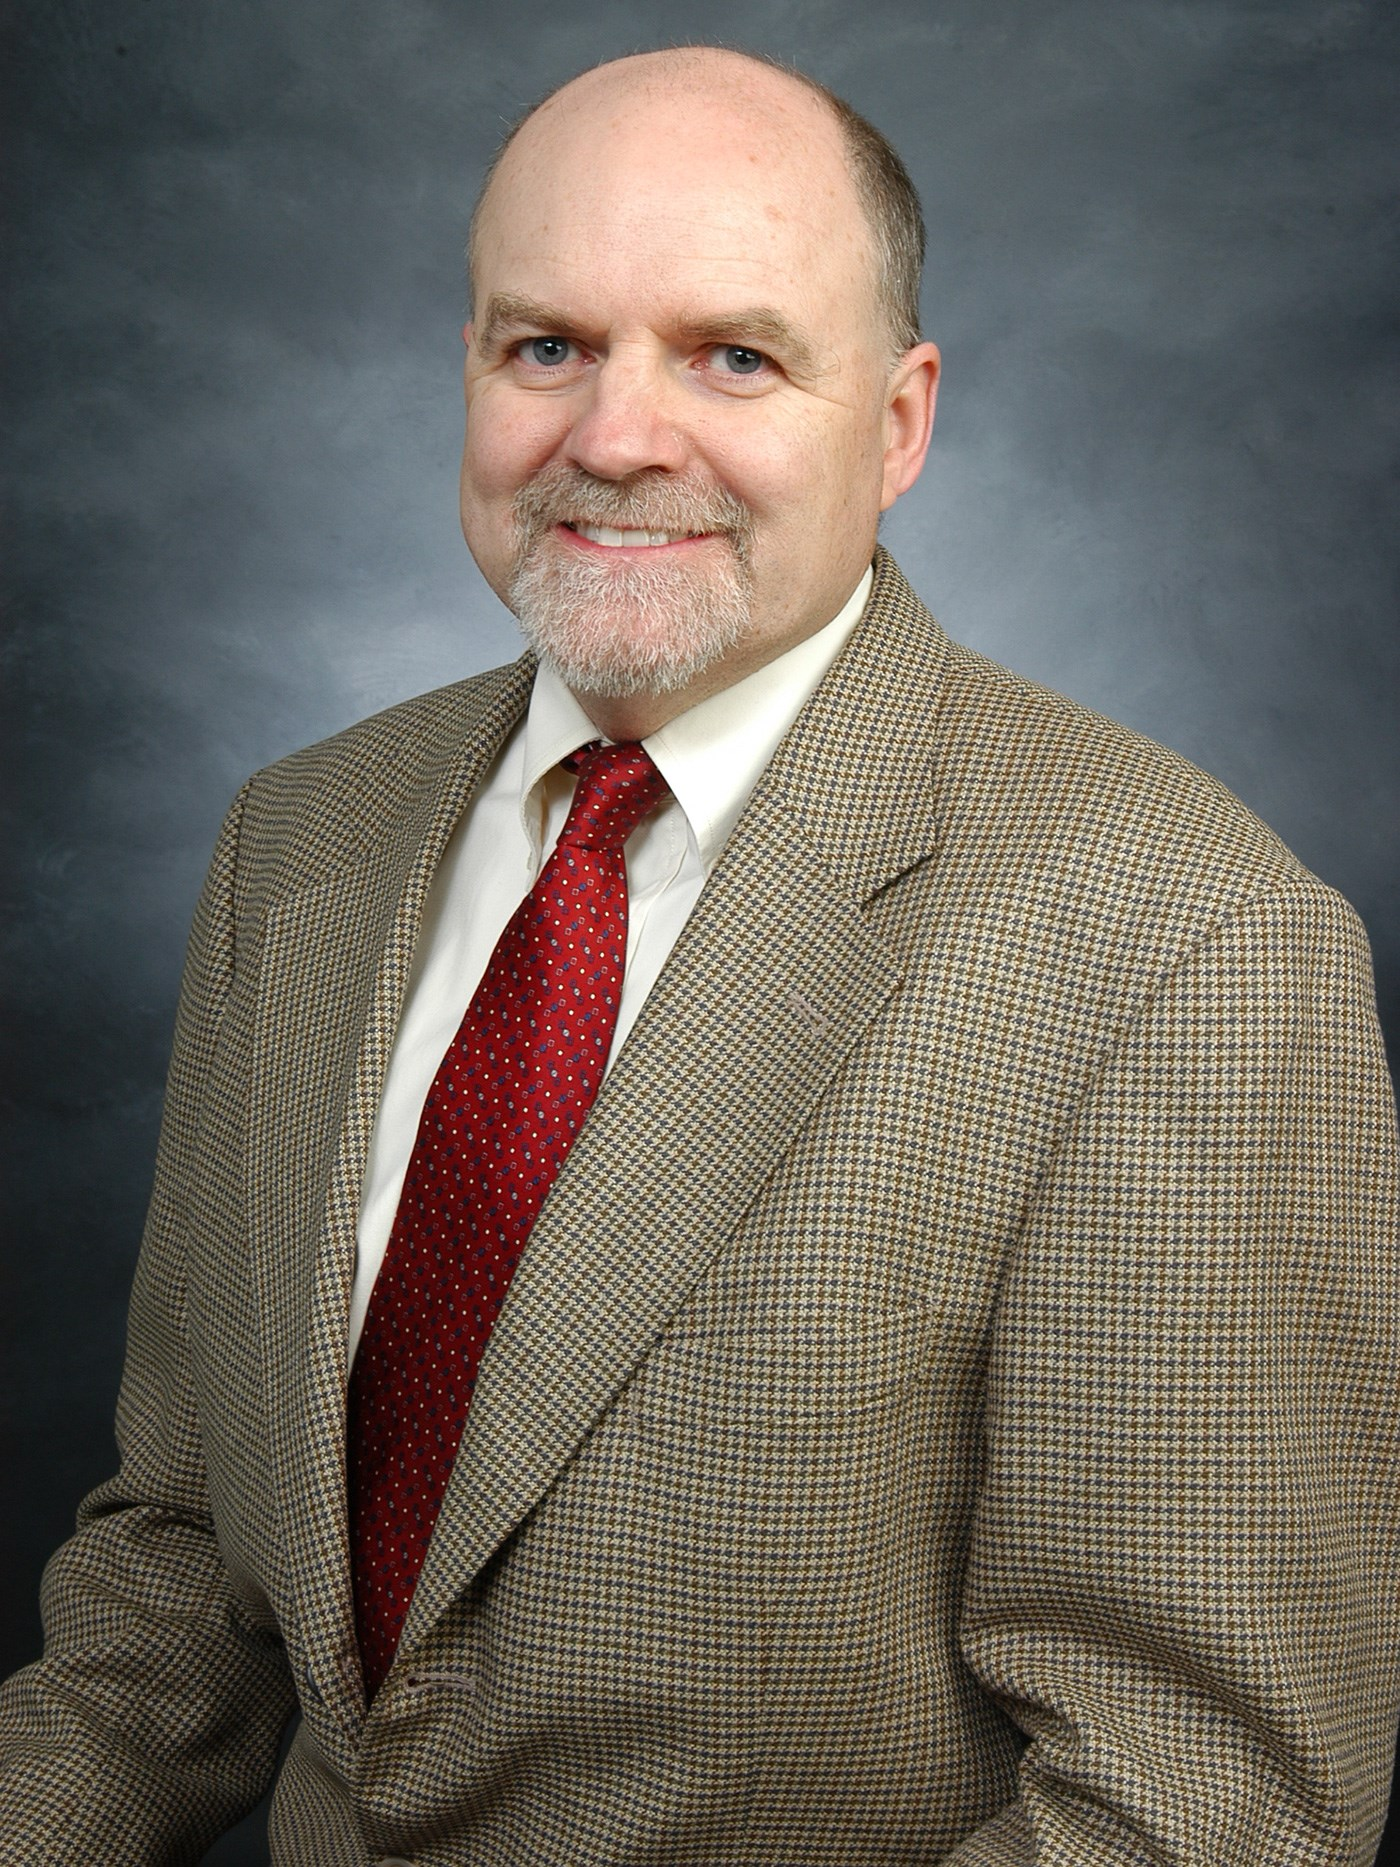 David Turcotte is a Research Professor, Director, Principal Investigator in the department of Economics at UMass Lowell.